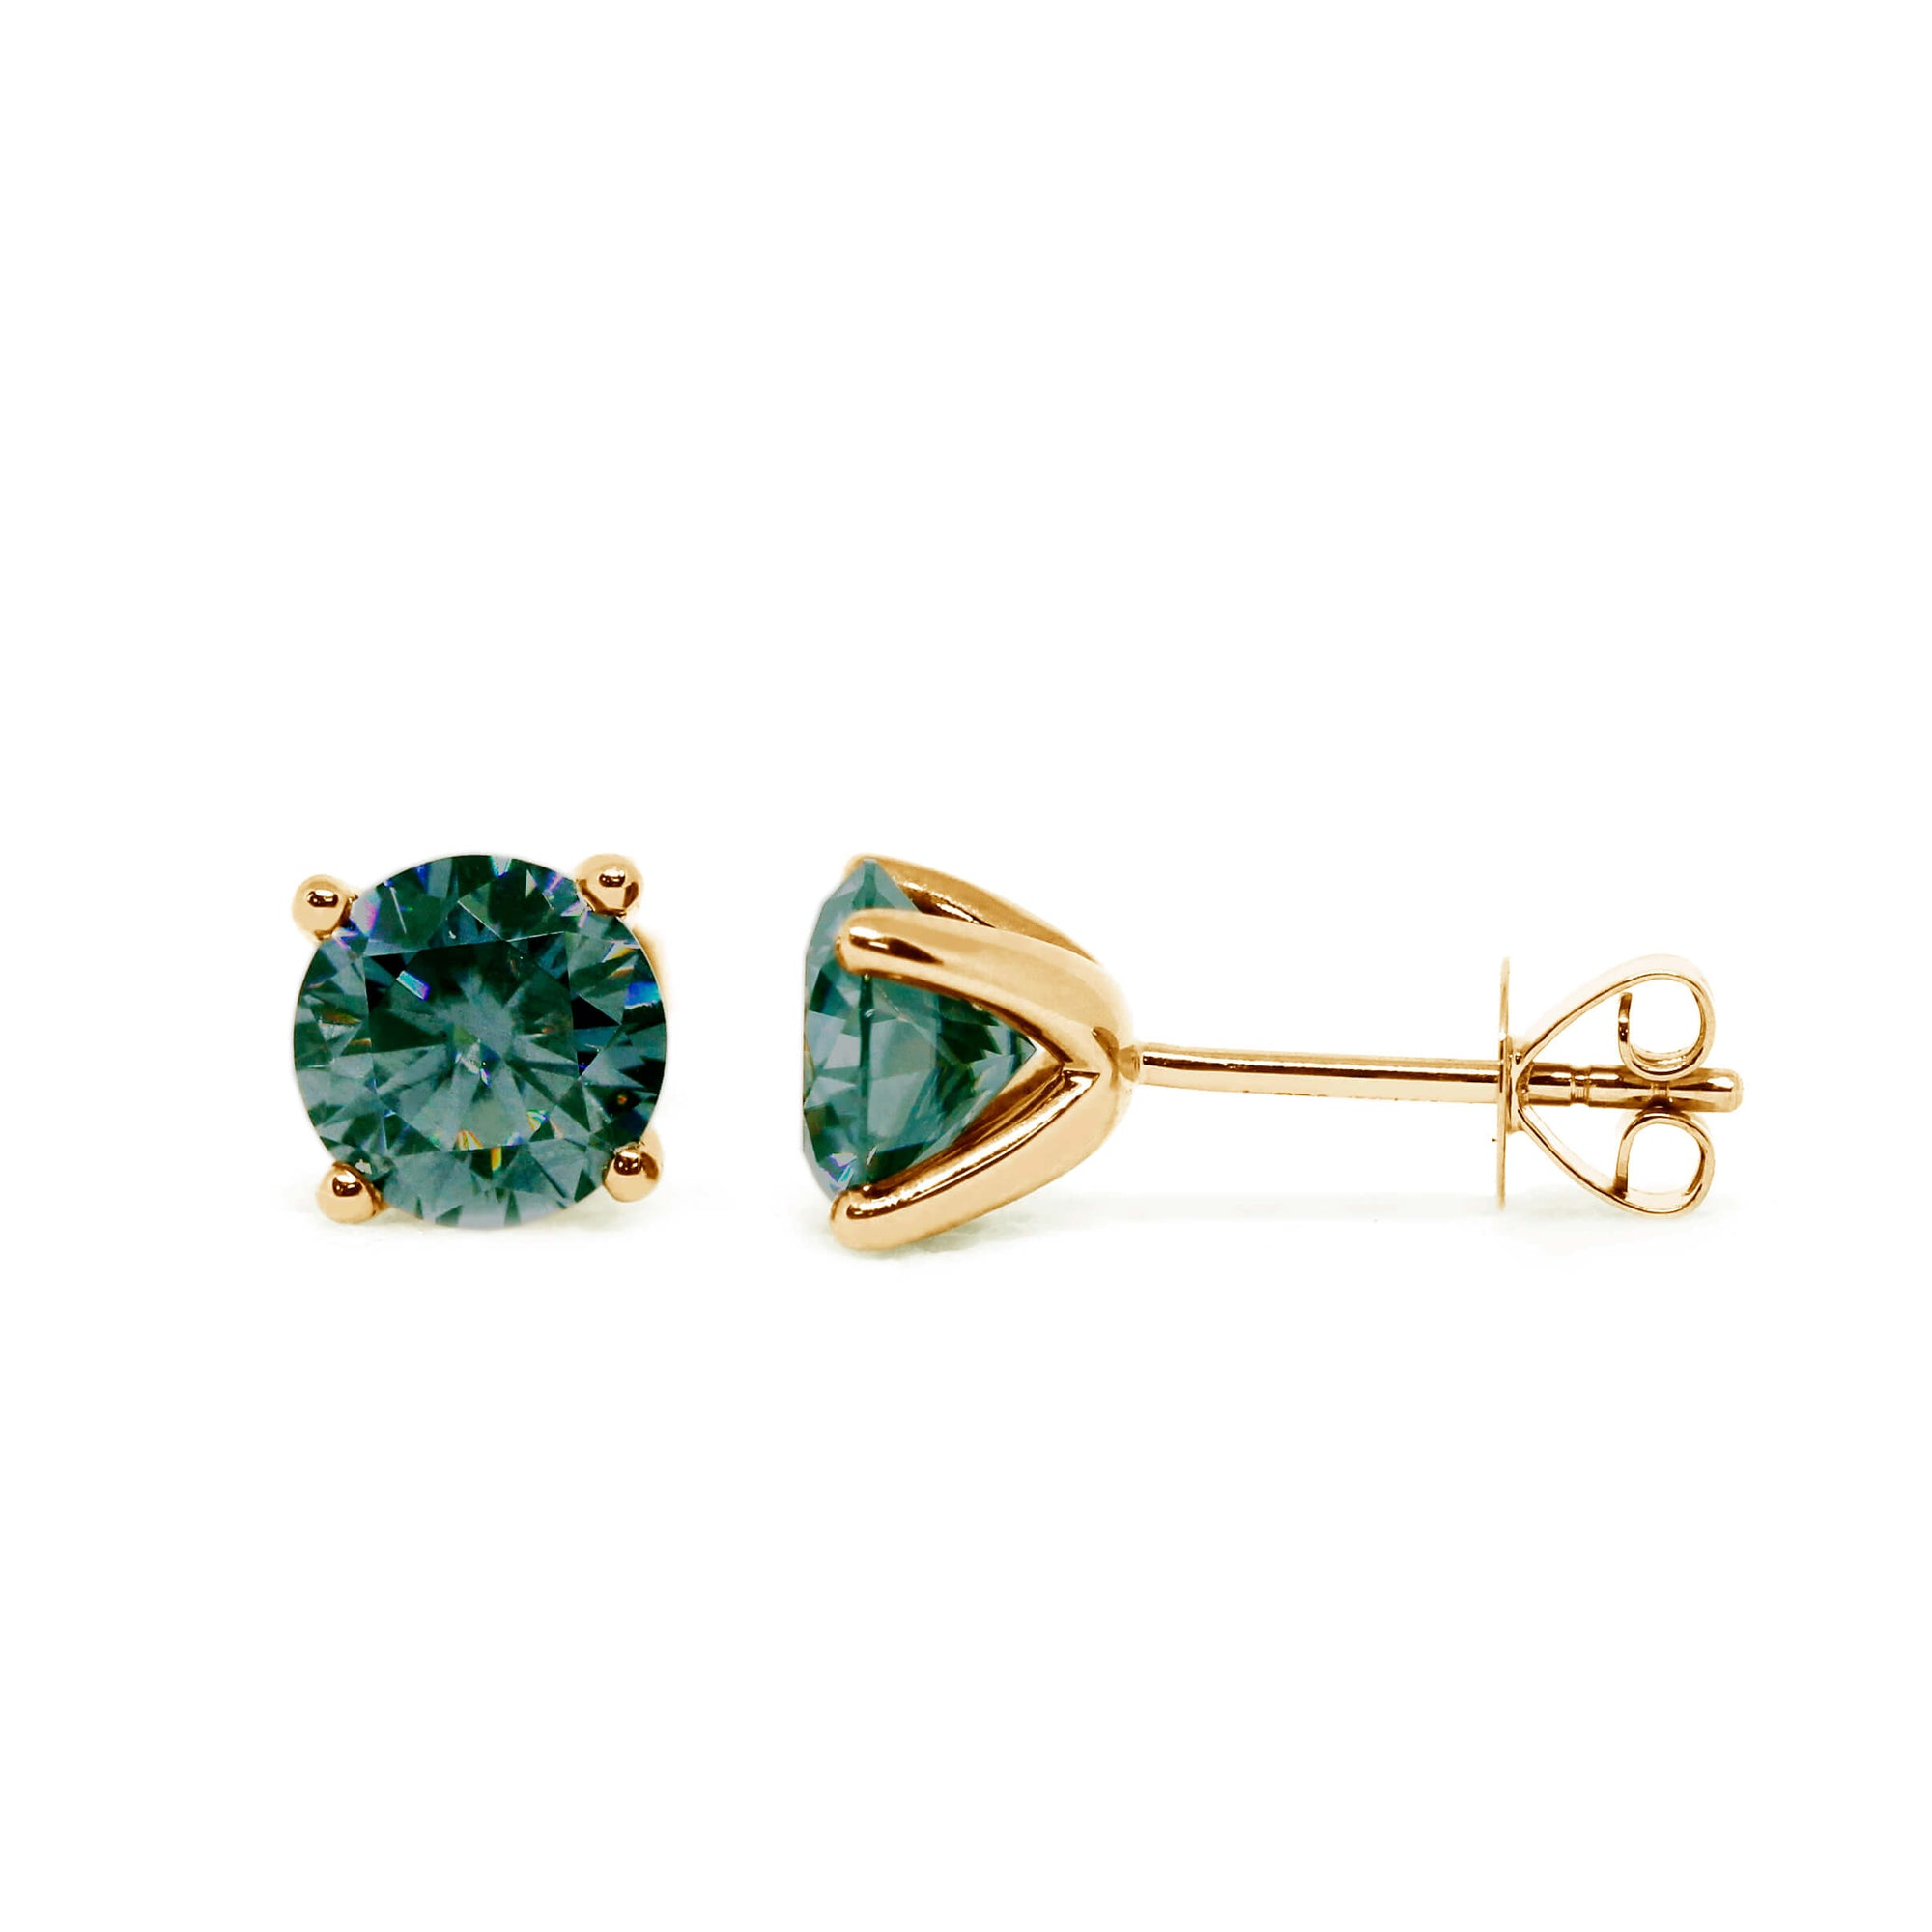 Dark Green Moissanite Solitaire 18K Yellow Gold Stud Earrings - Lecaine Gems Moissanite